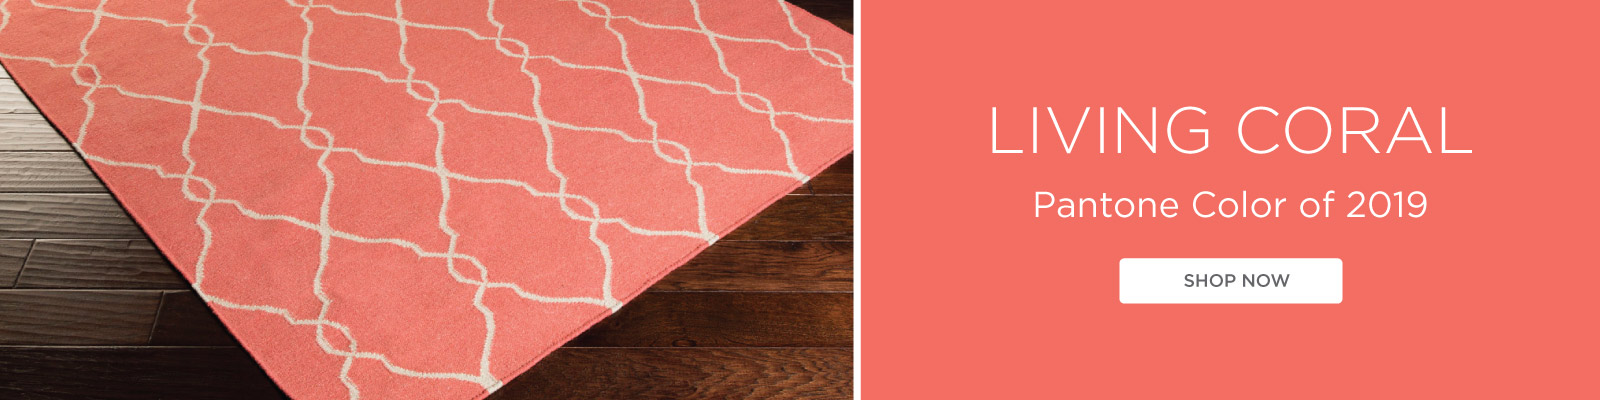 Home Trends - Pantone Living Coral